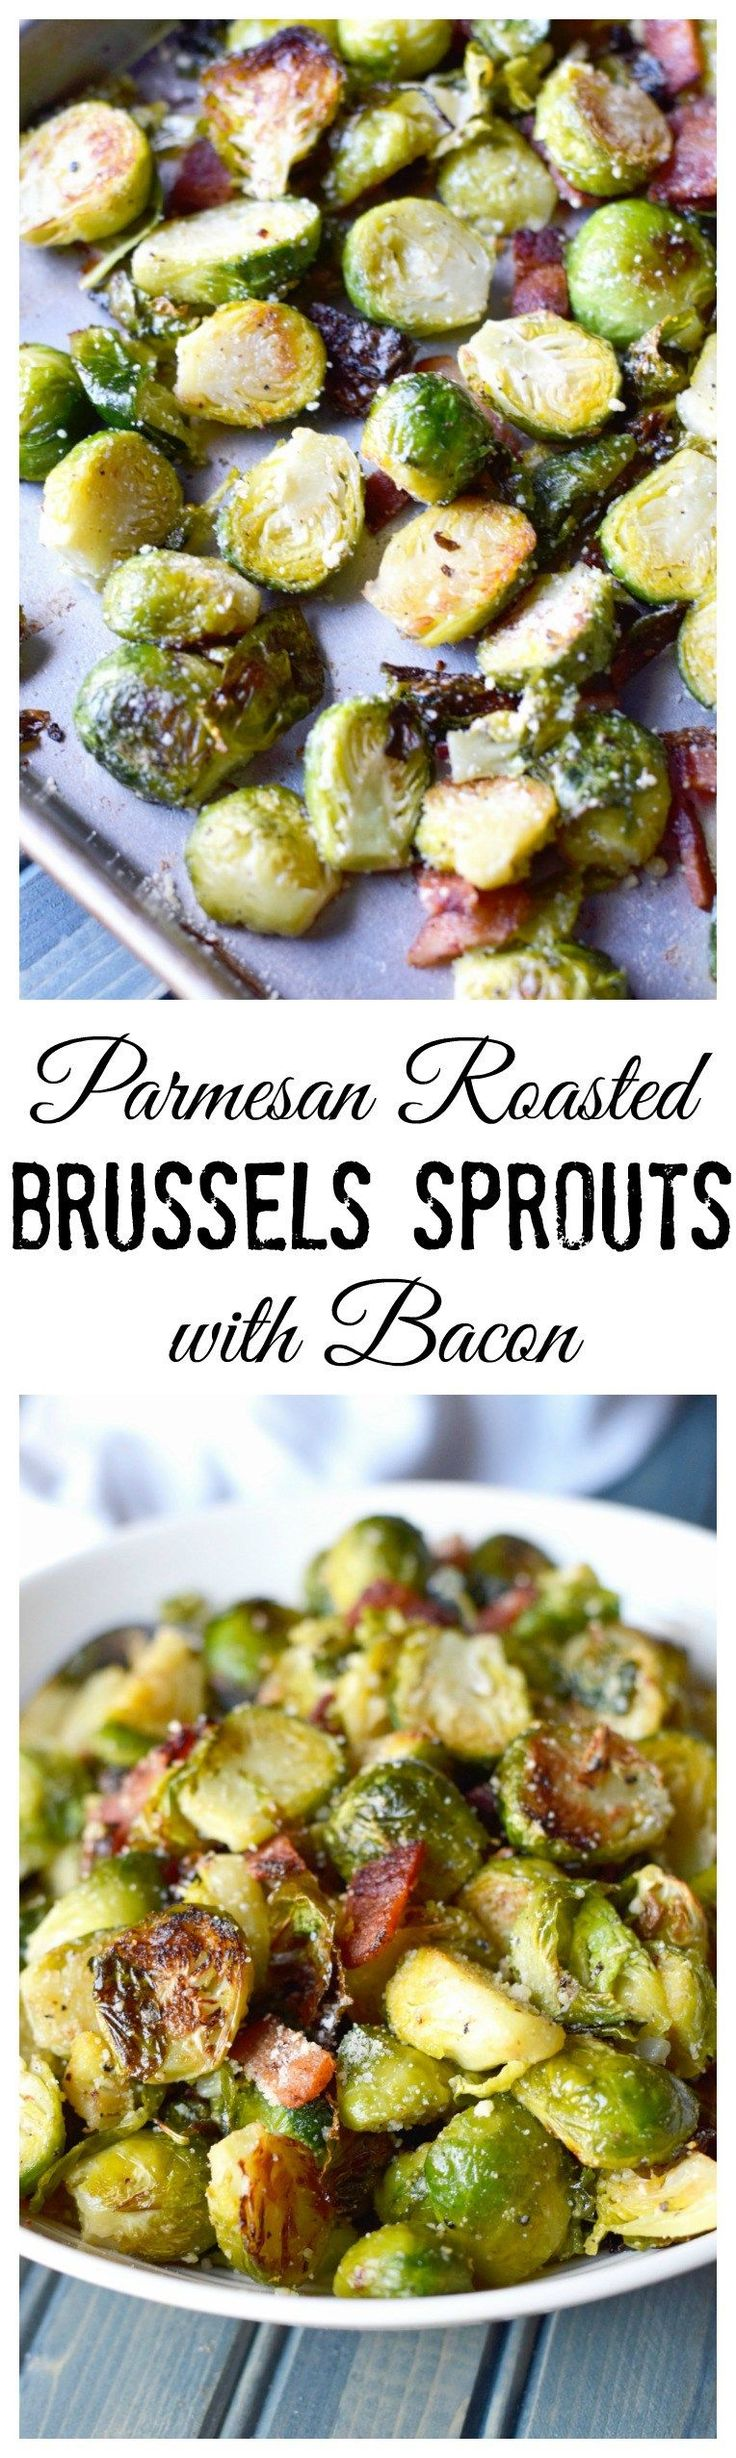 This Roasted Parmesan Brussels Sprouts with Bacon recipe is to die for. Perfect for any Holiday side dish.